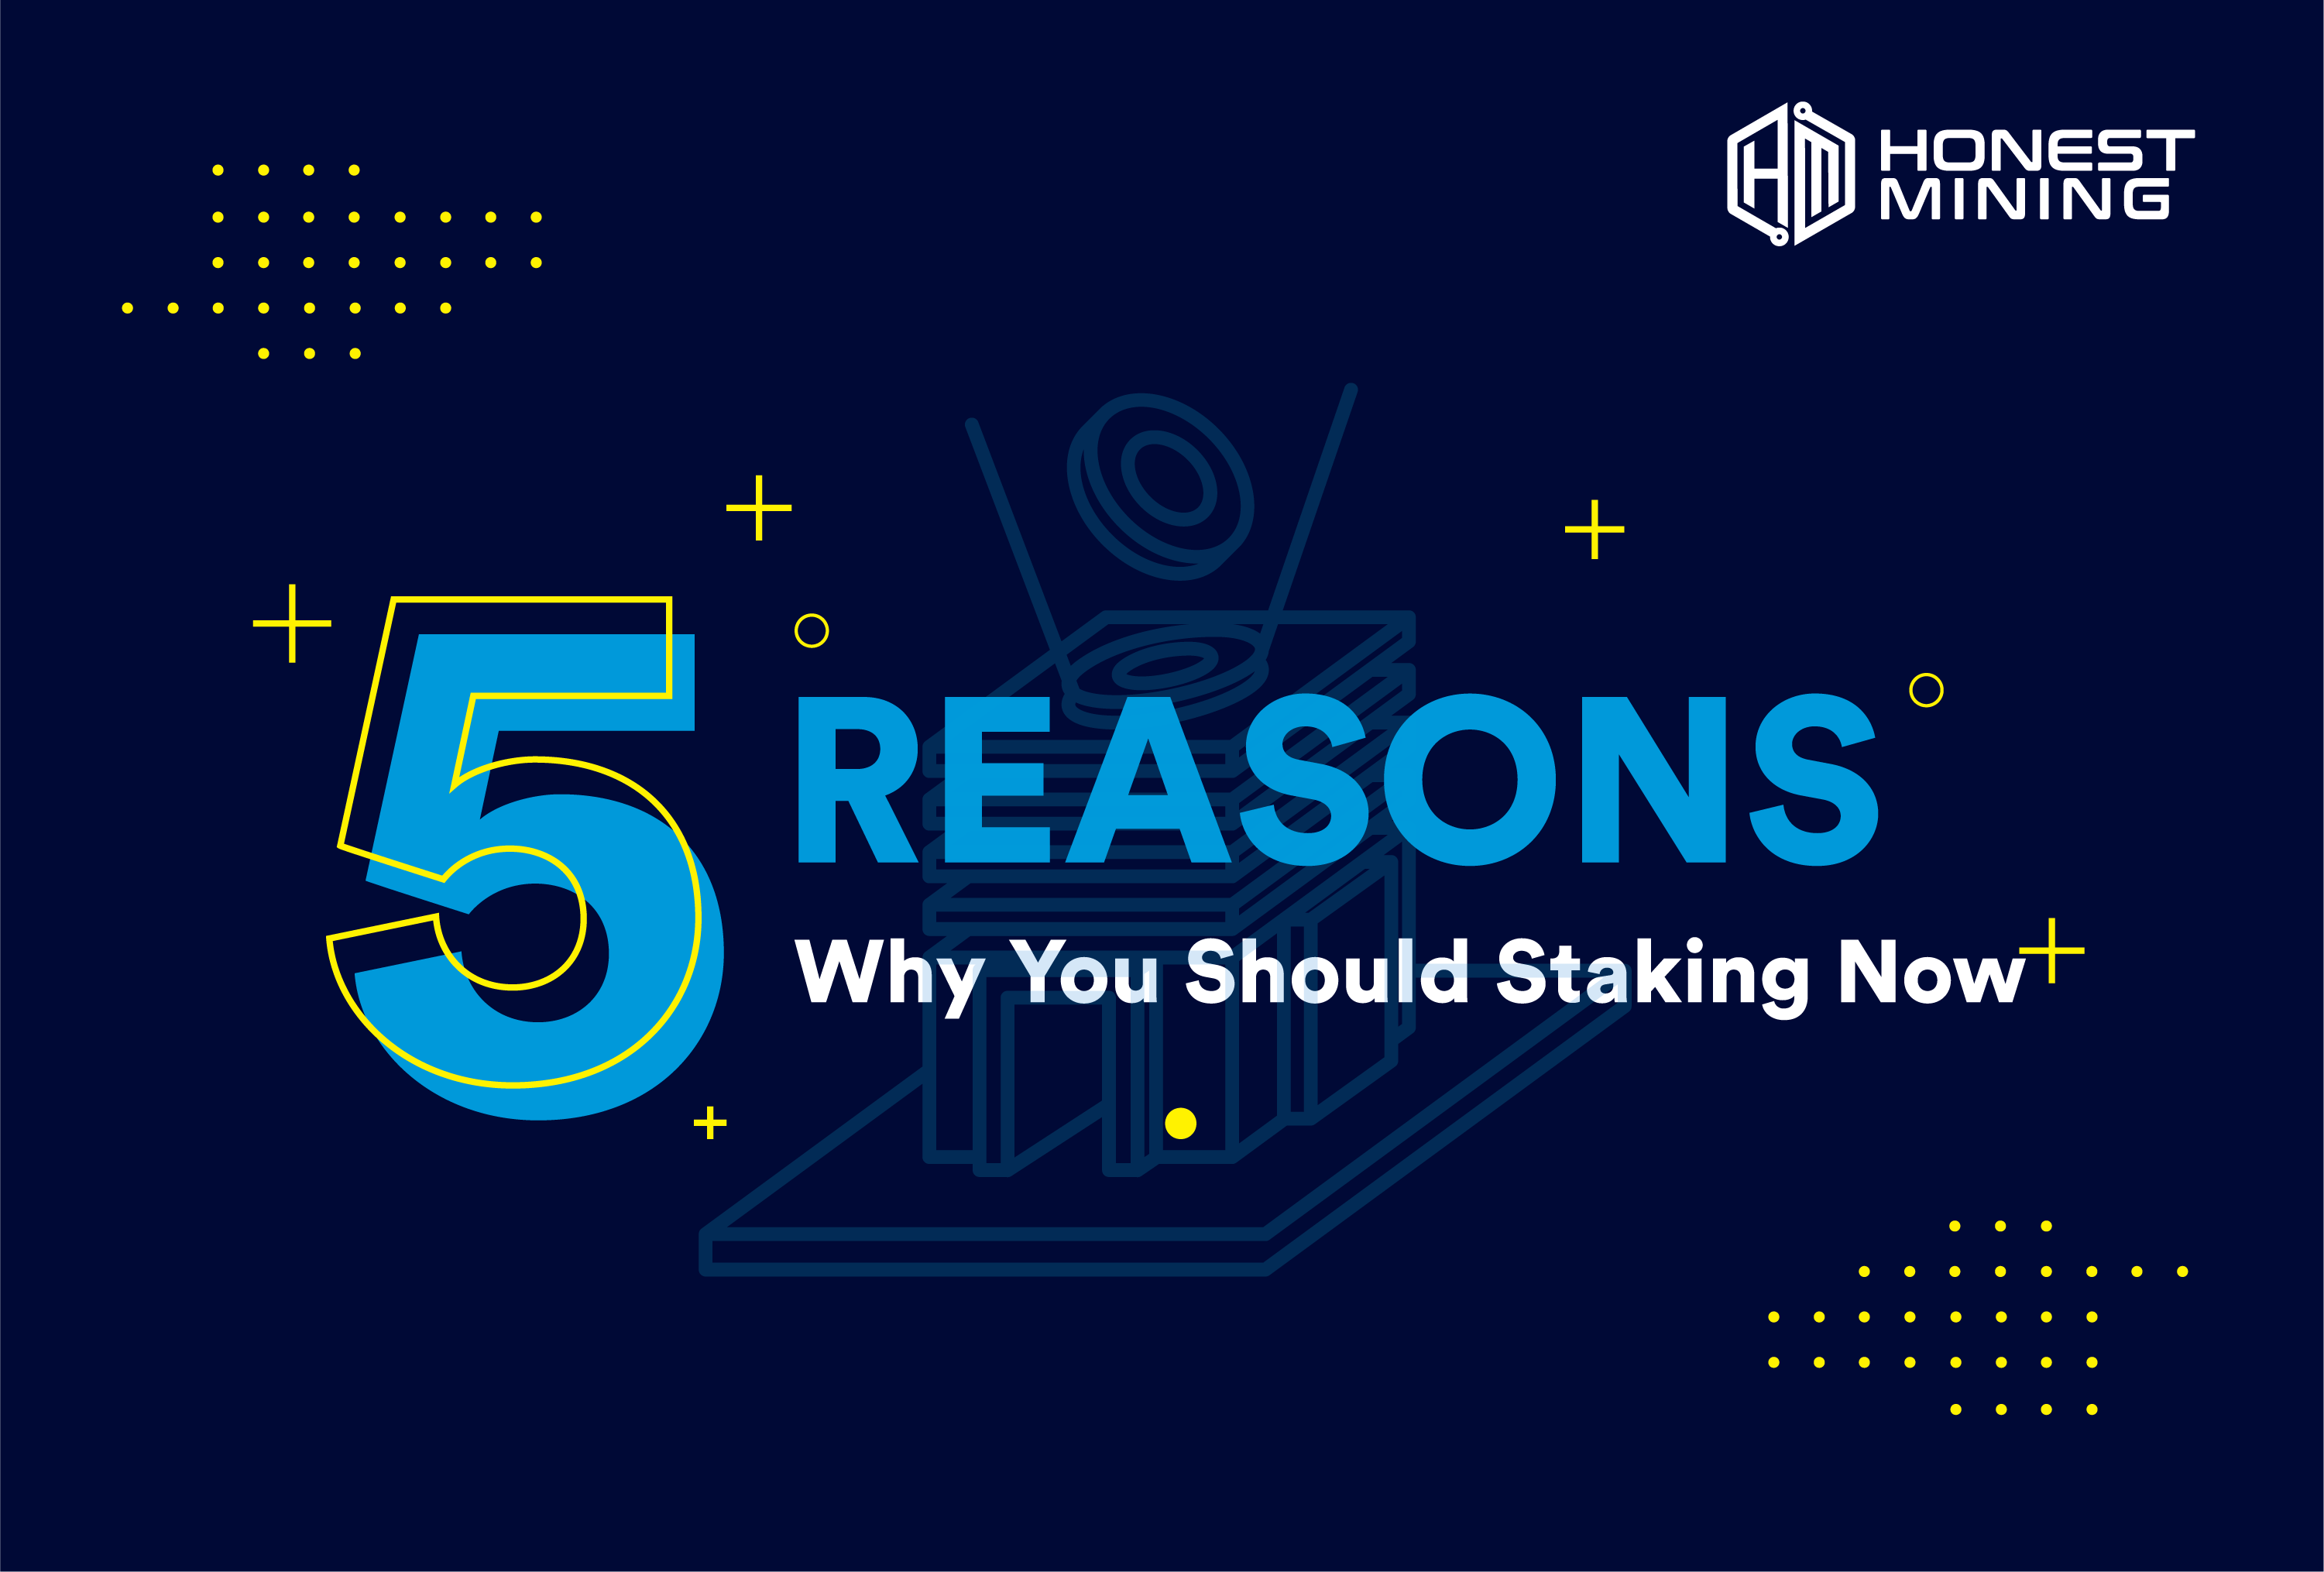 why staking